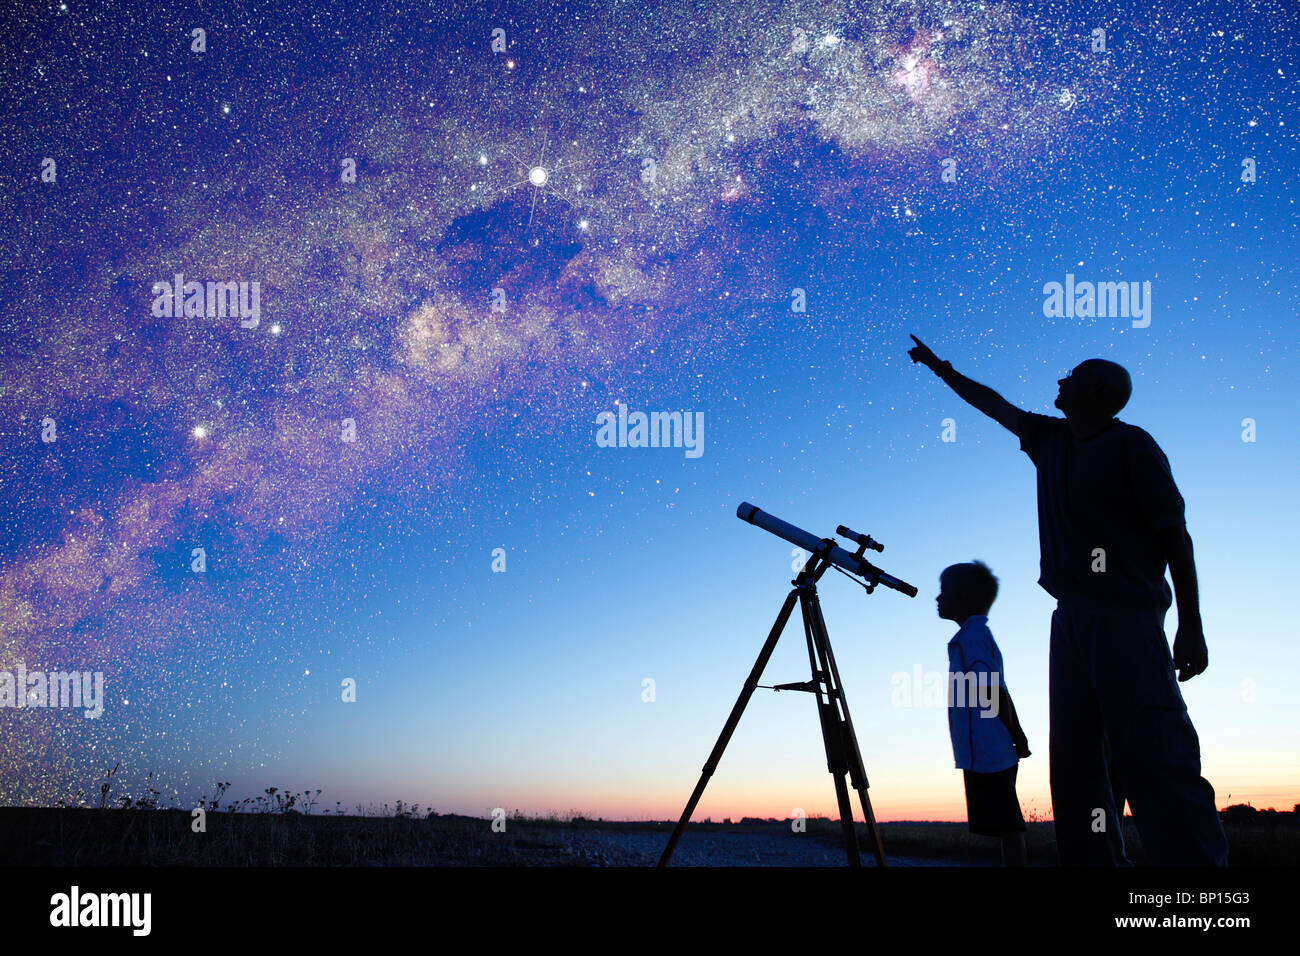 Man showing milky way to little boy, telescope - Stock Image